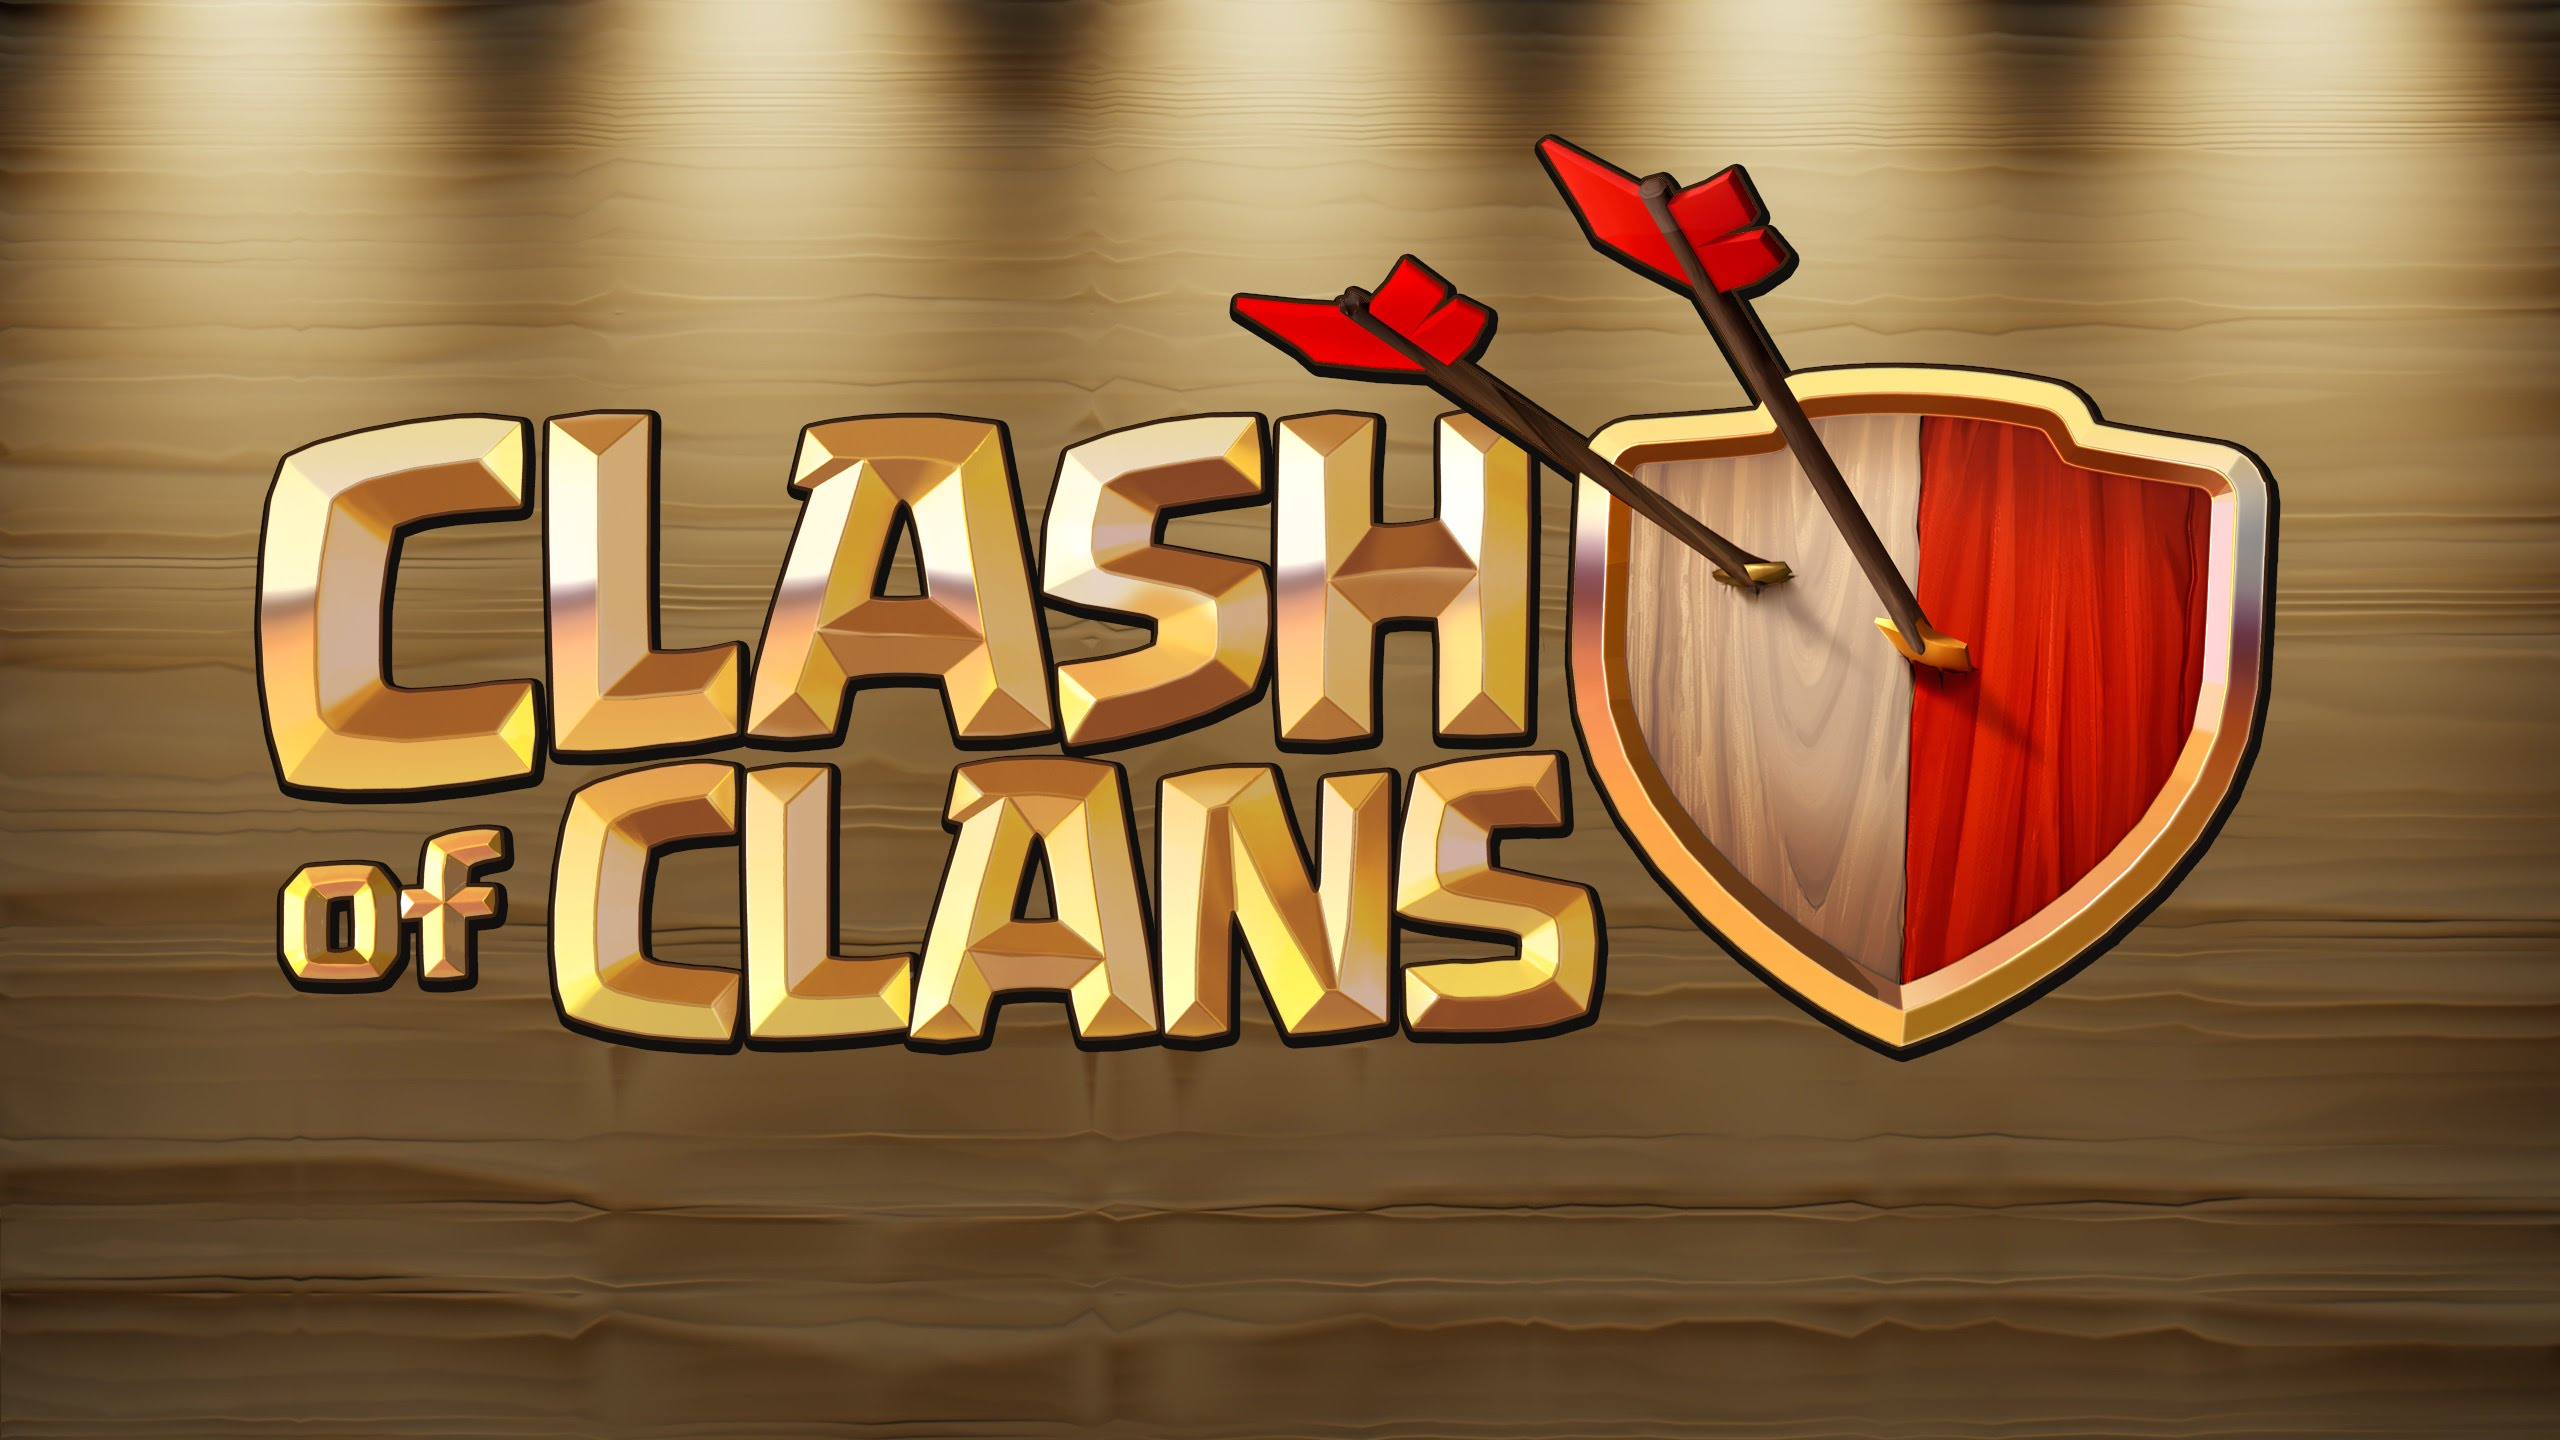 Clash of Clans Logo Wallpaper Background 58486 2560x1440 2560x1440